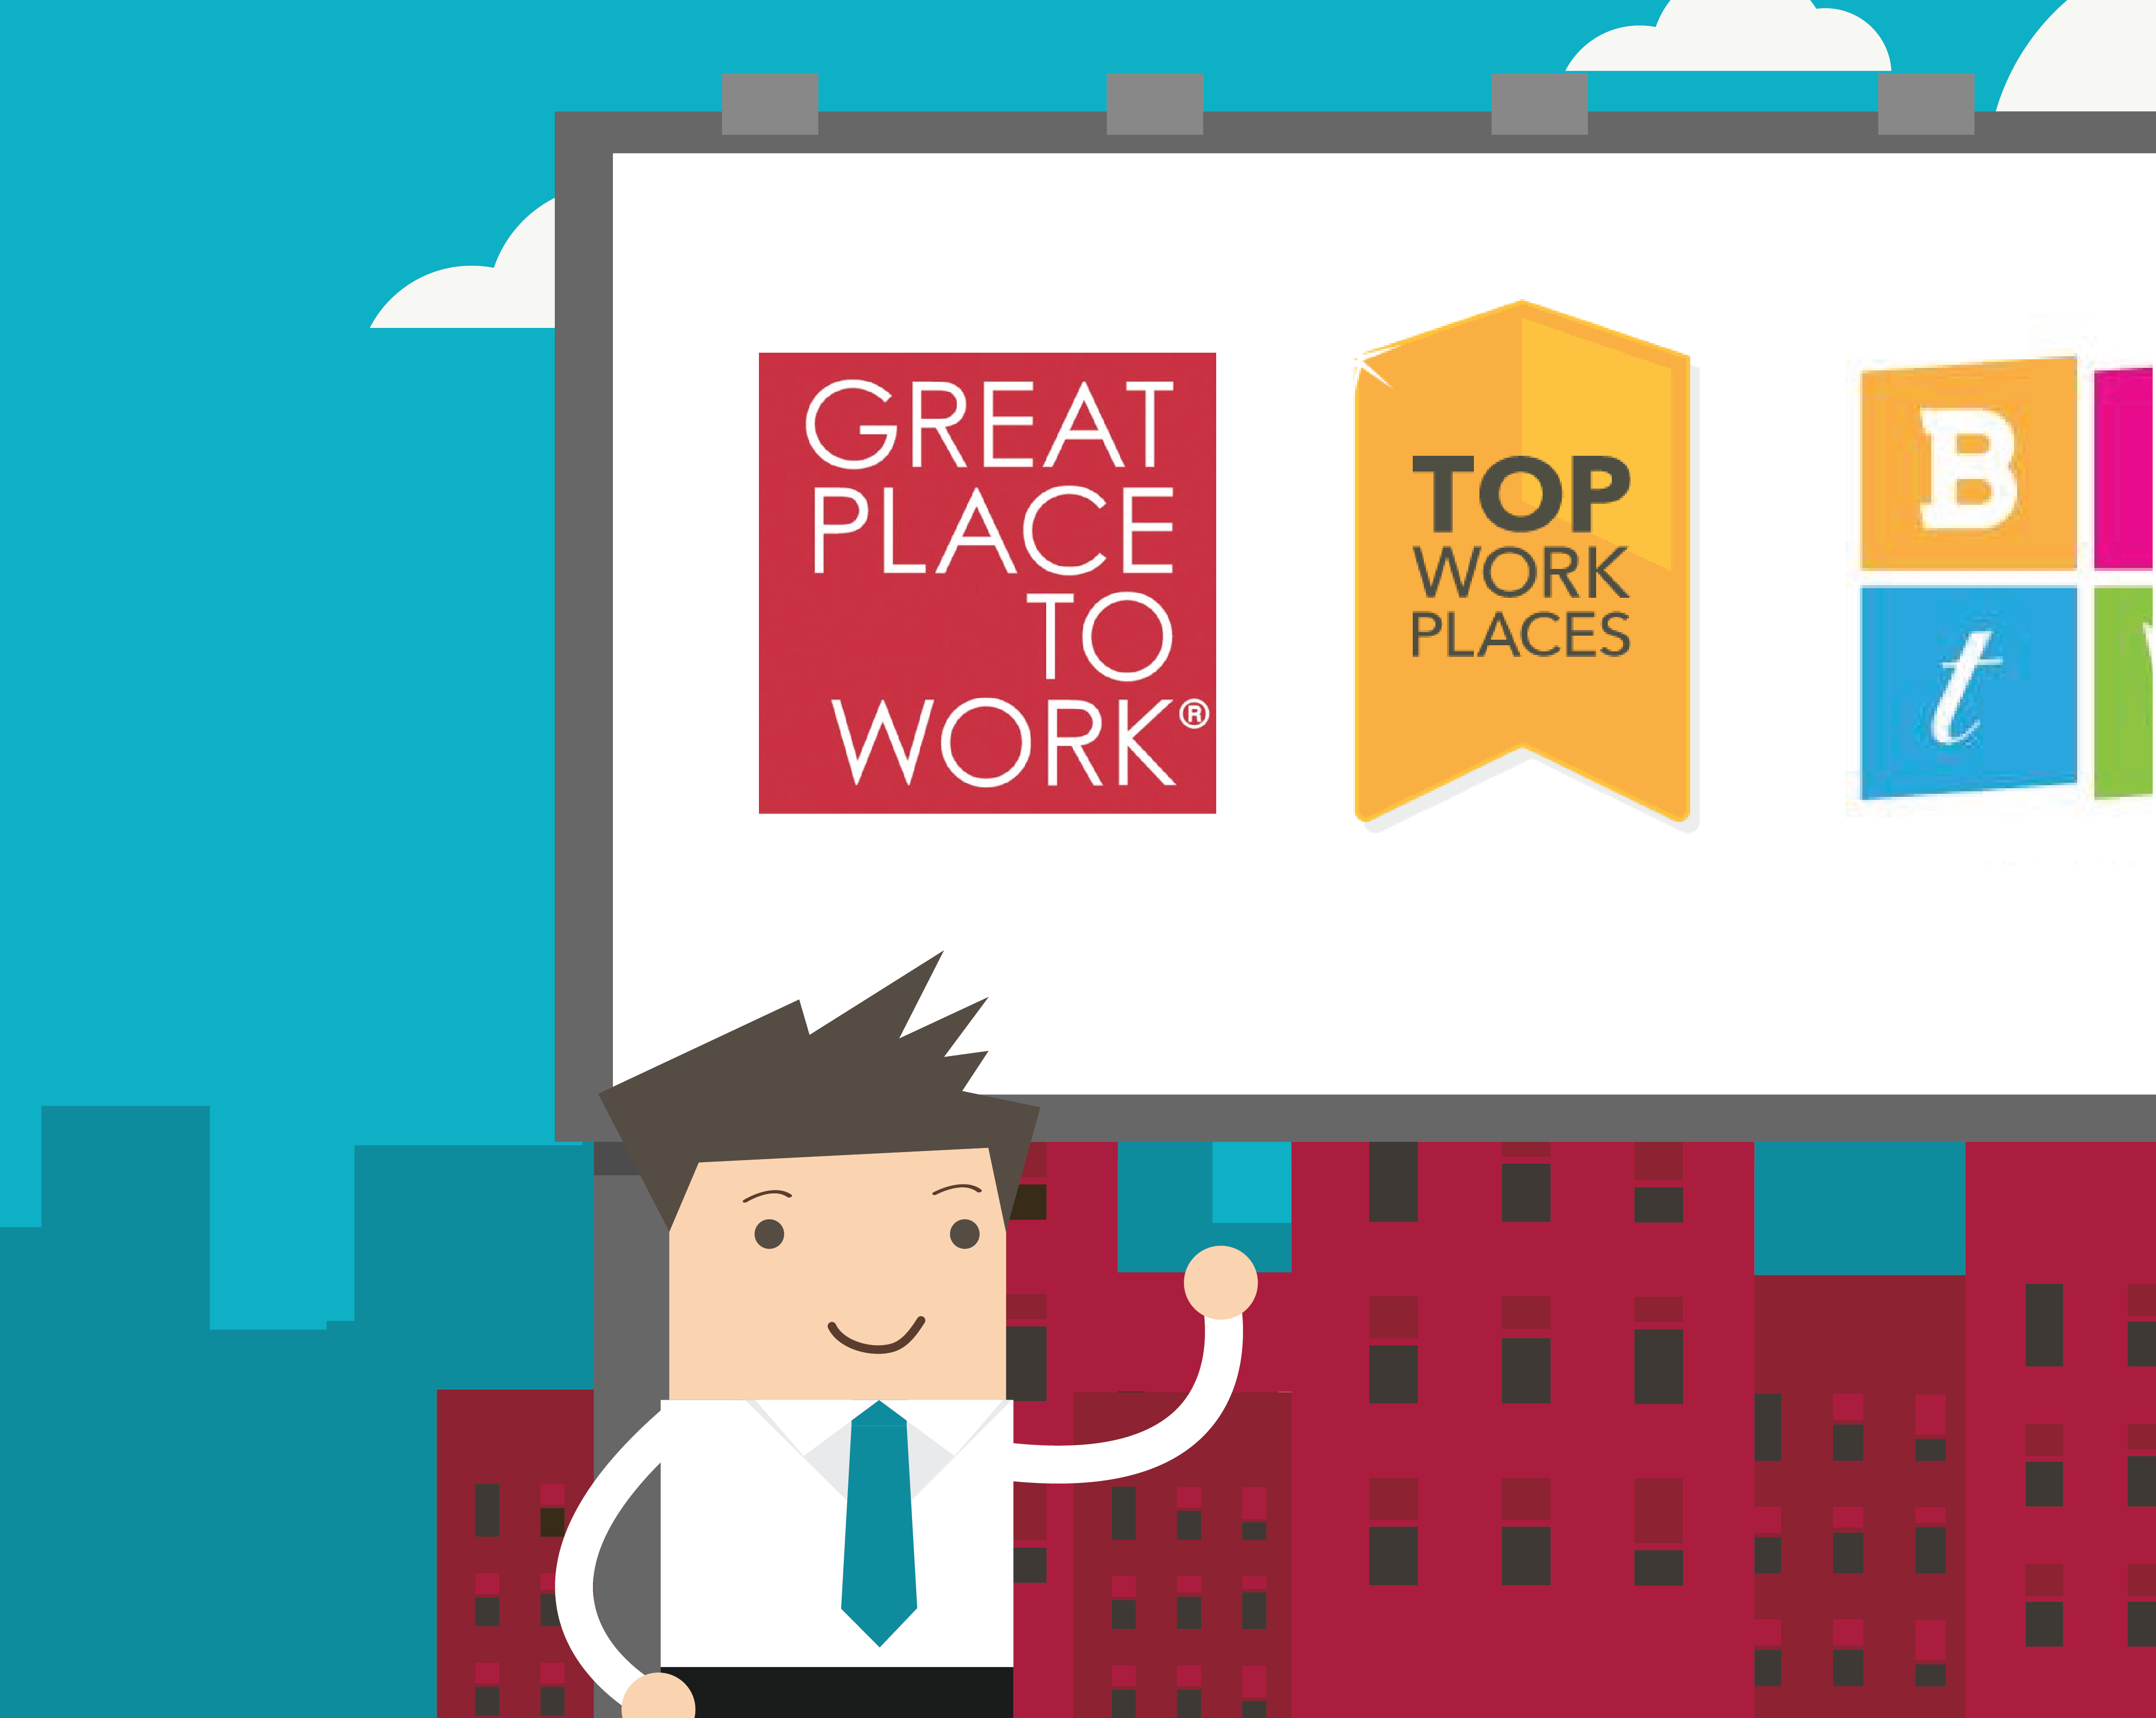 What's the worth of being recognized as a great workplace?